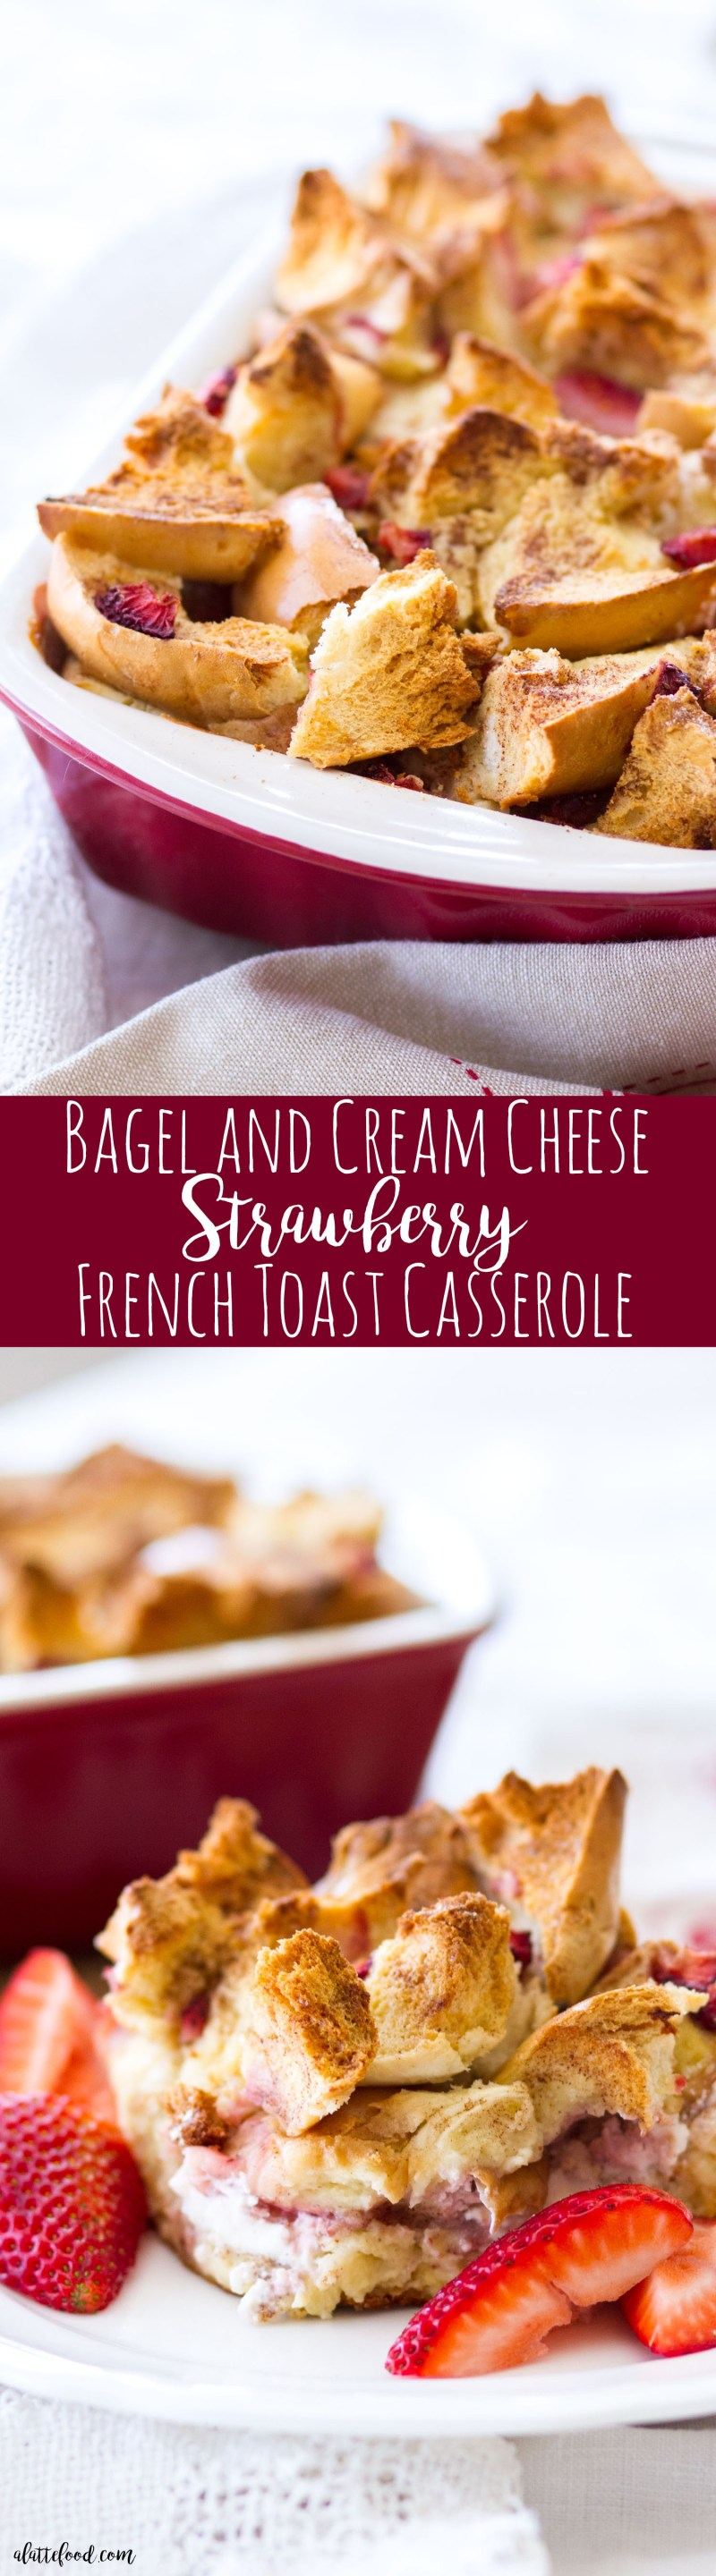 This Bagel and Cream Cheese Strawberry French Toast Casserole is an easy brunch recipe! Eggland's Best eggs, milk, heavy cream, cinnamon, sugar, and vanilla extract are poured over a mixture of bagels, cream cheese, and strawberries, making a quick-and-easy brunch that can be made ahead of time!